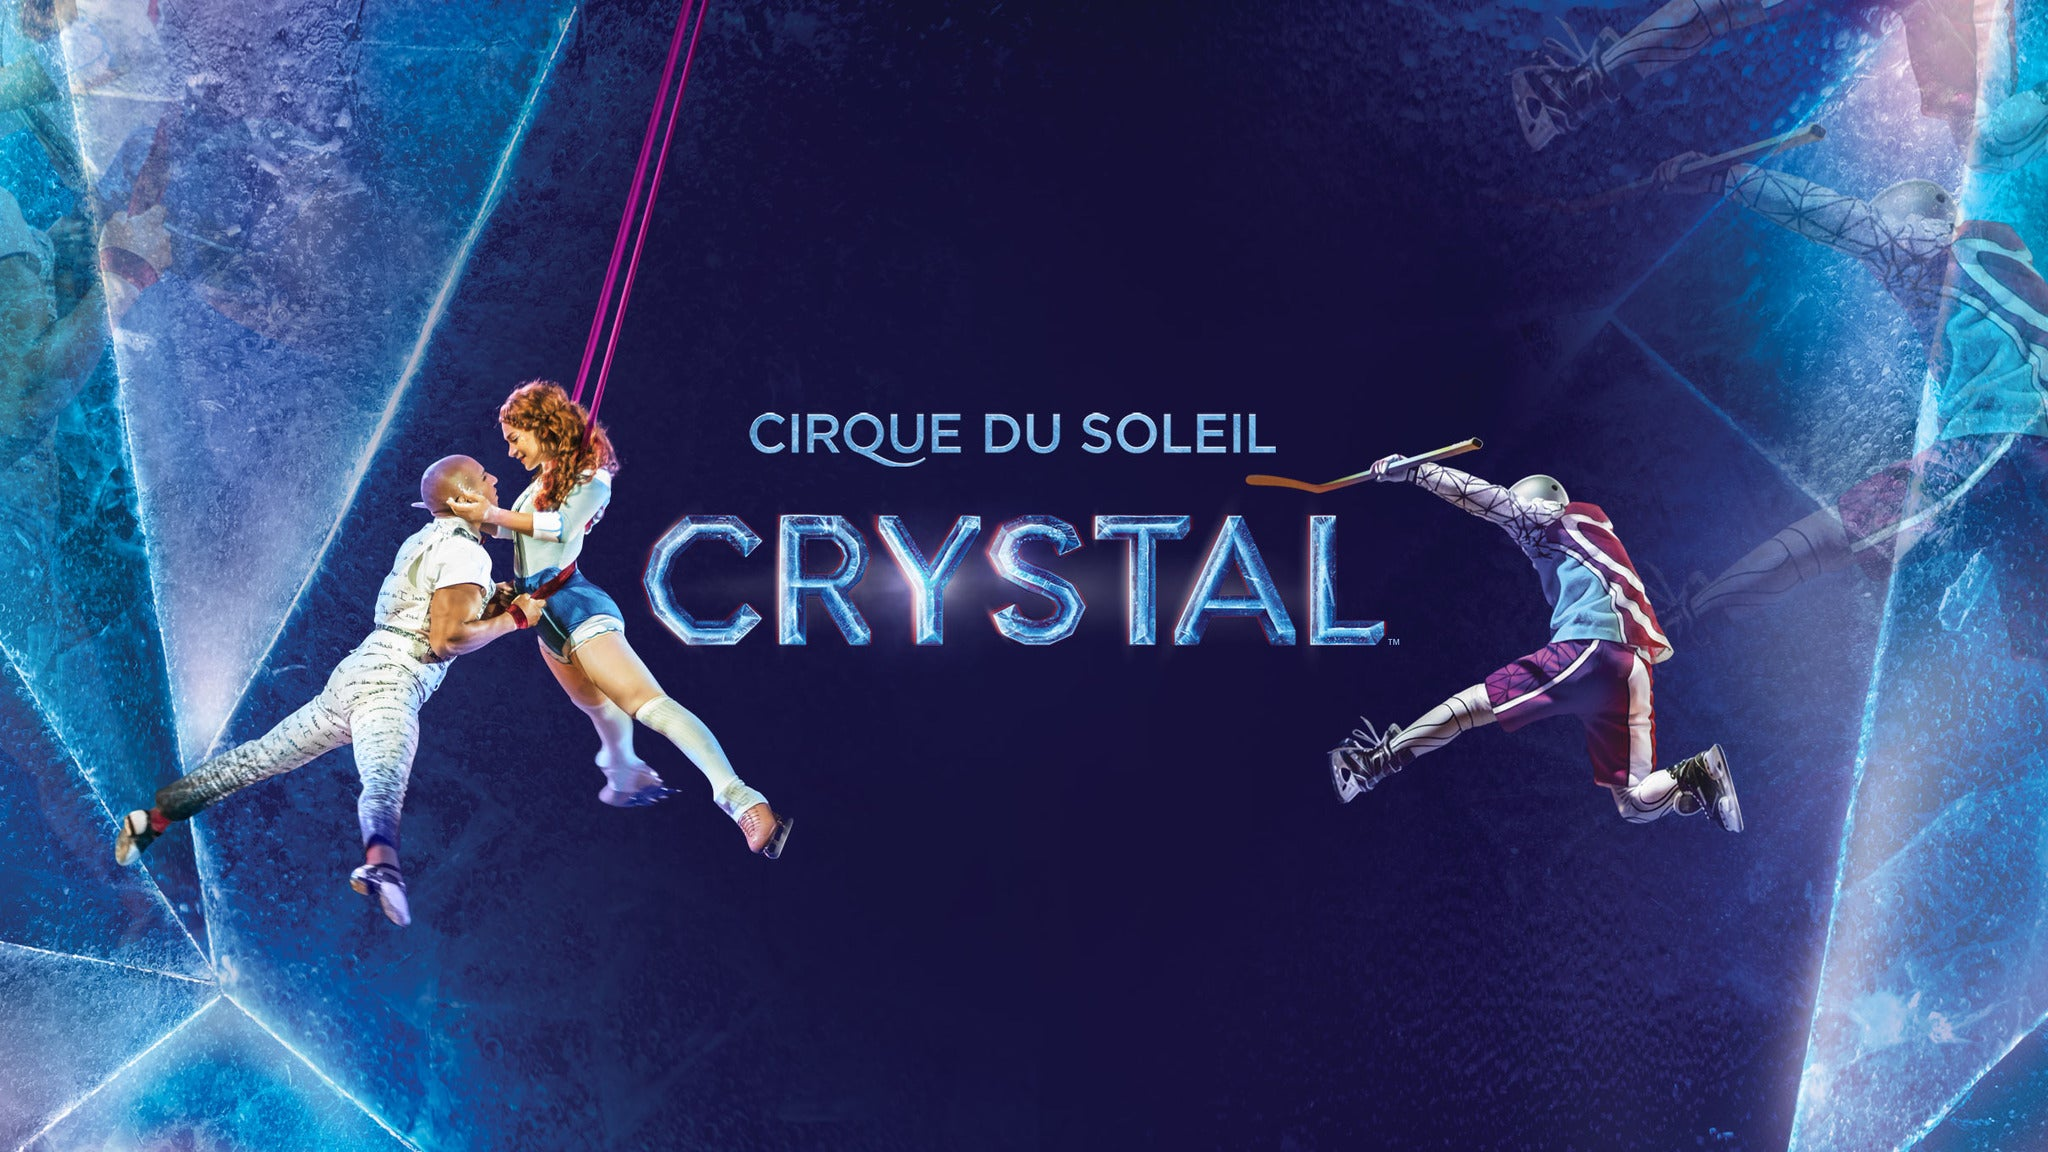 Cirque du Soleil Crystal at Denny Sanford PREMIER Center